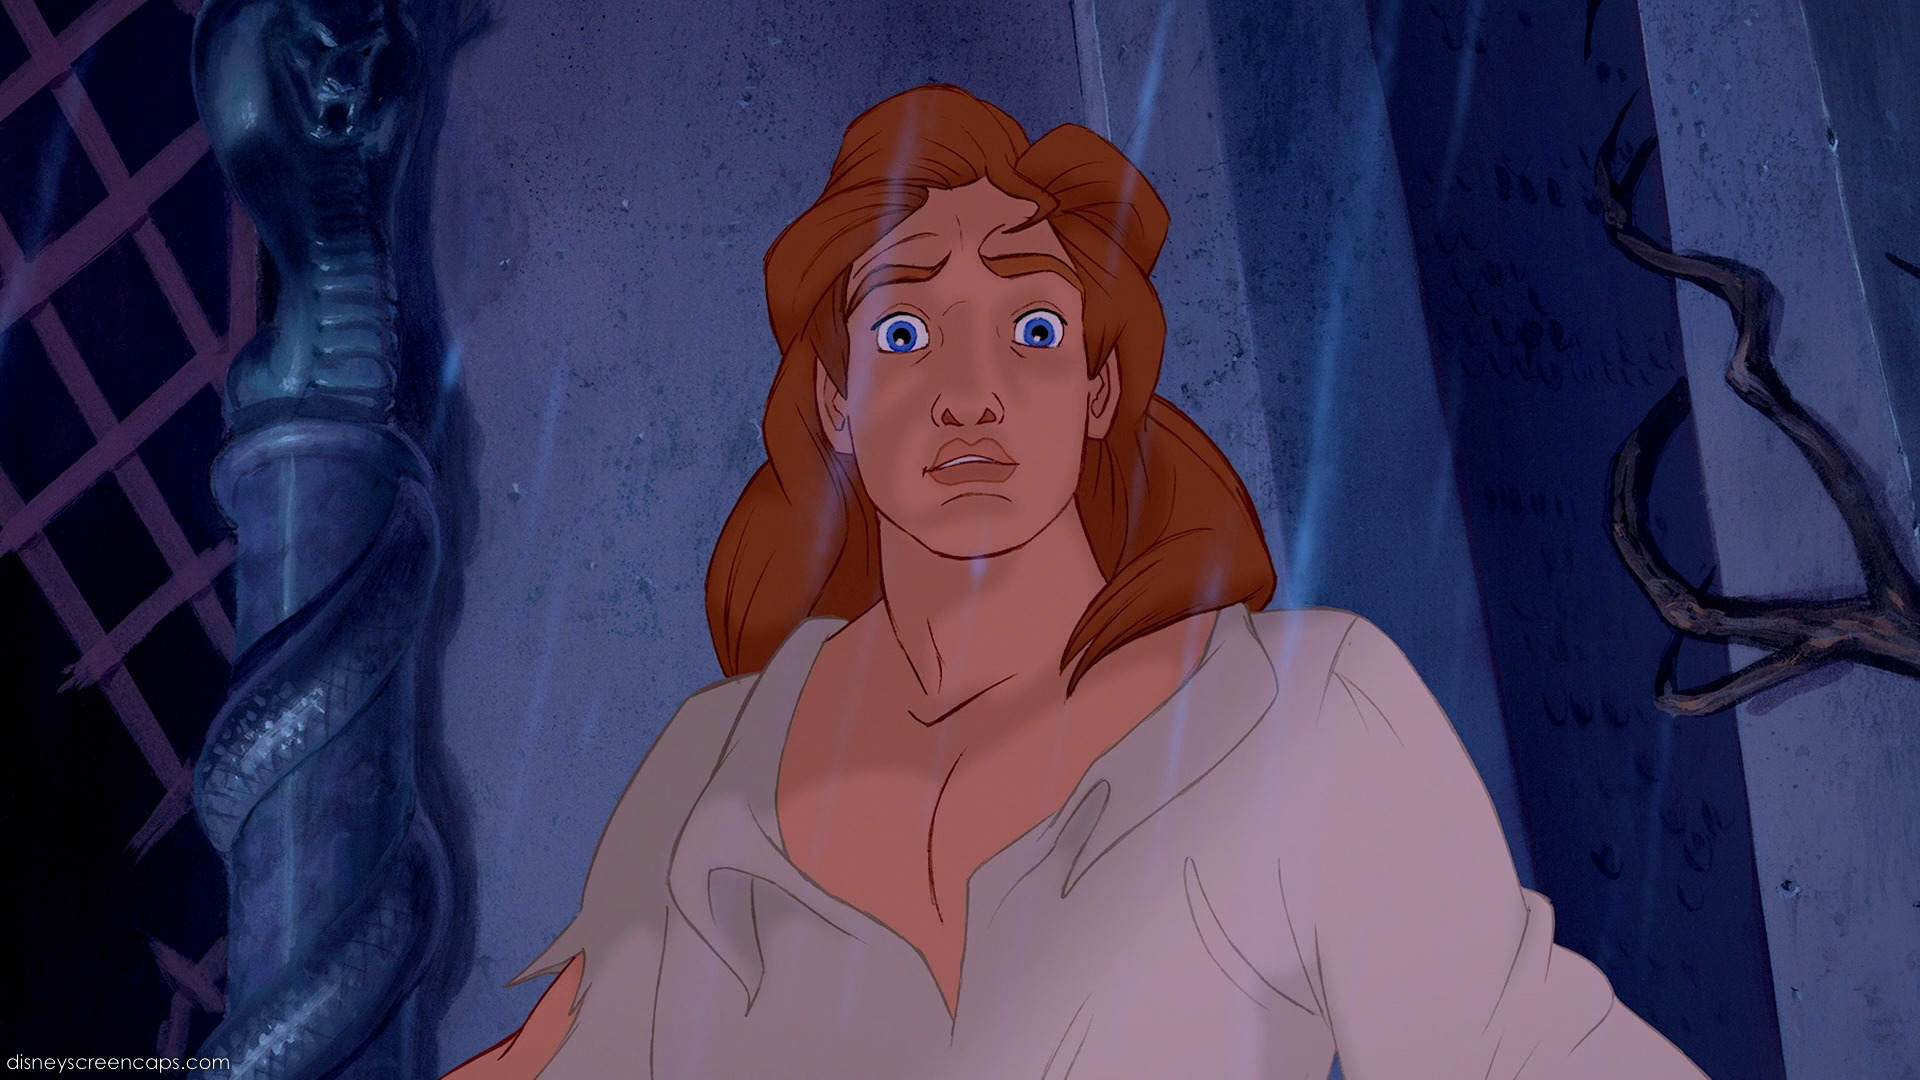 Disney prince after transforming from beast - he has a near mullet and his shirt is unbuttoned half way